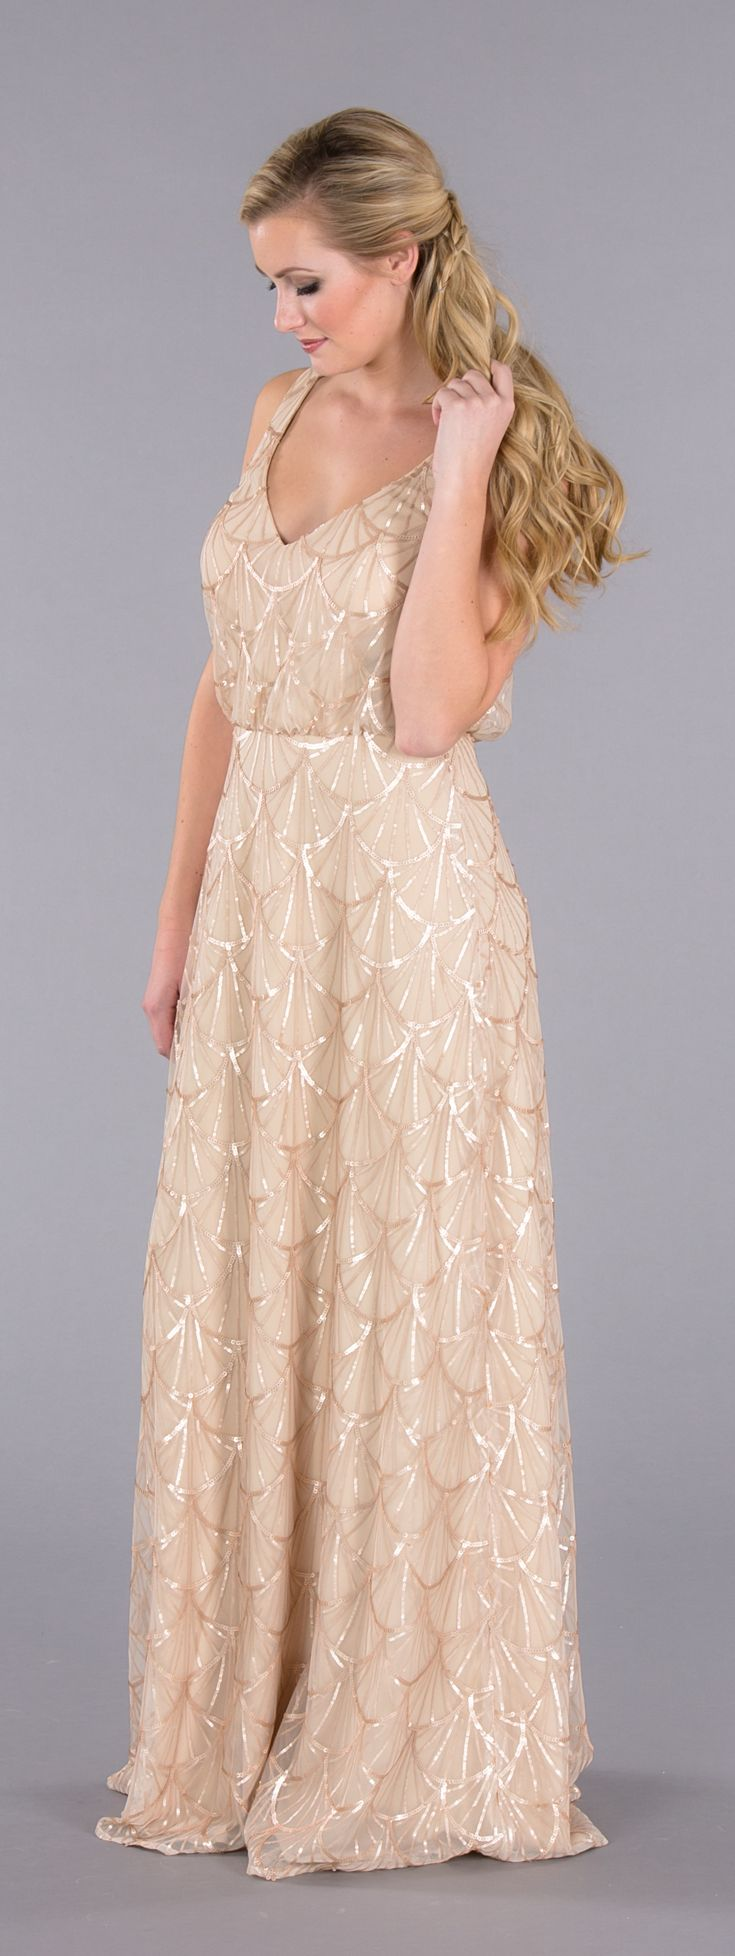 A sparkly sequin bridesmaid dress for under $200! Your 'maids will adore this v-neck dress in our nude-gold color!